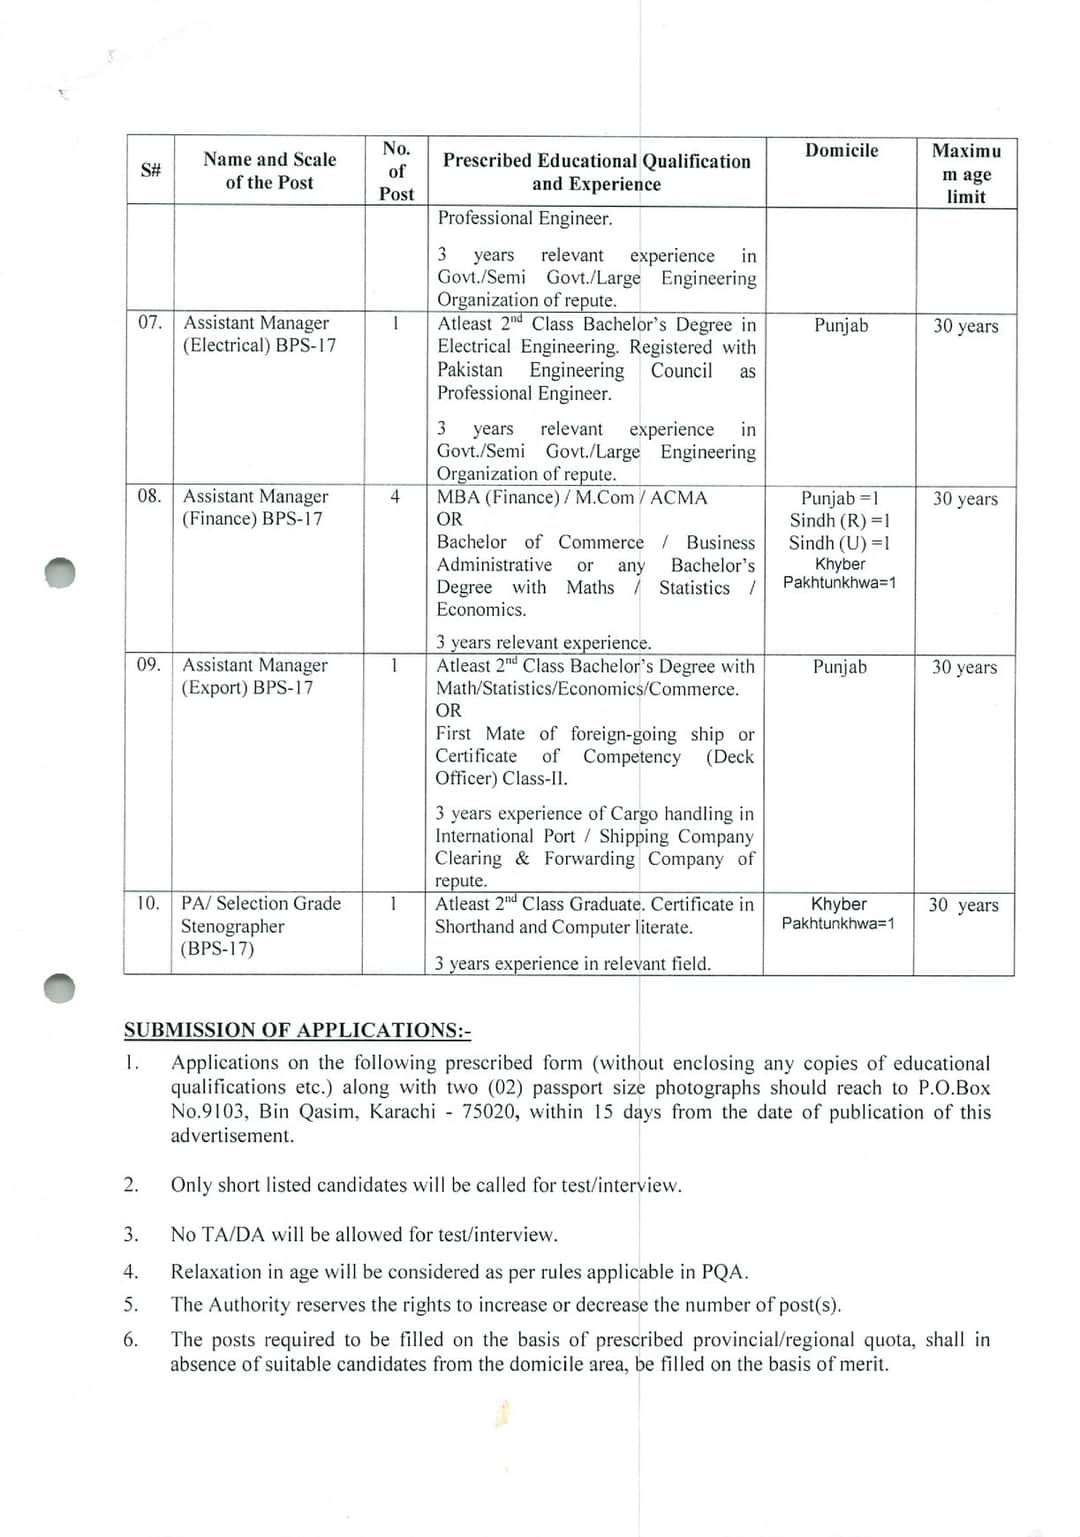 Latest Port Qasim Authority PQA Karachi Jobs 2020 for Assistant Manager, Personal Assistant, Stenographer & more